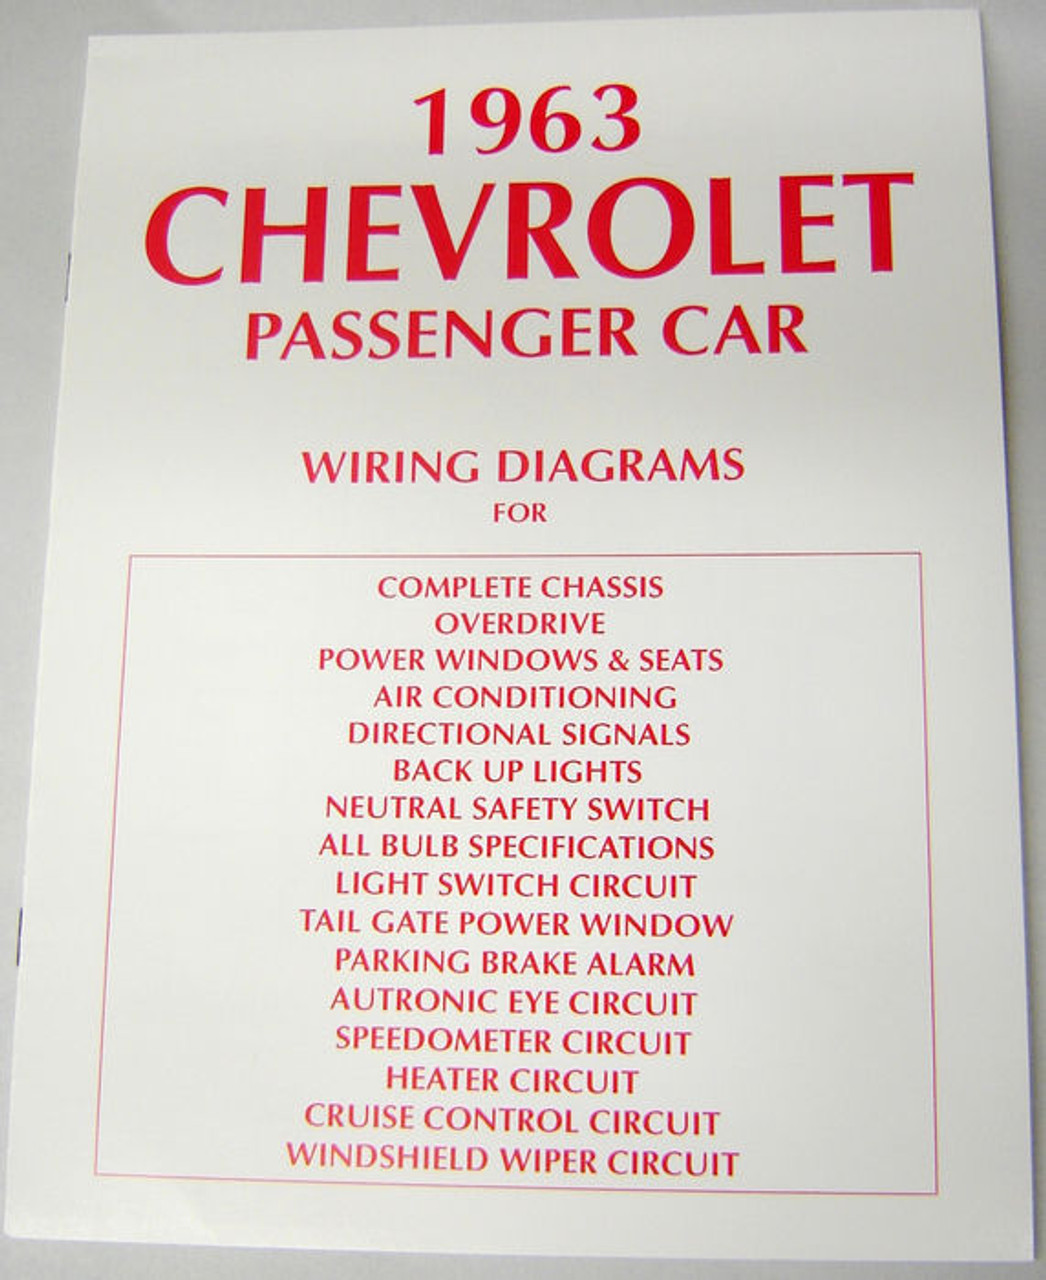 L1016_zpsdlq6nmgy__31214.1443480568?c=2 63 chevy impala electrical wiring diagram manual 1963 i 5 1963 impala headlight switch wiring diagram at edmiracle.co